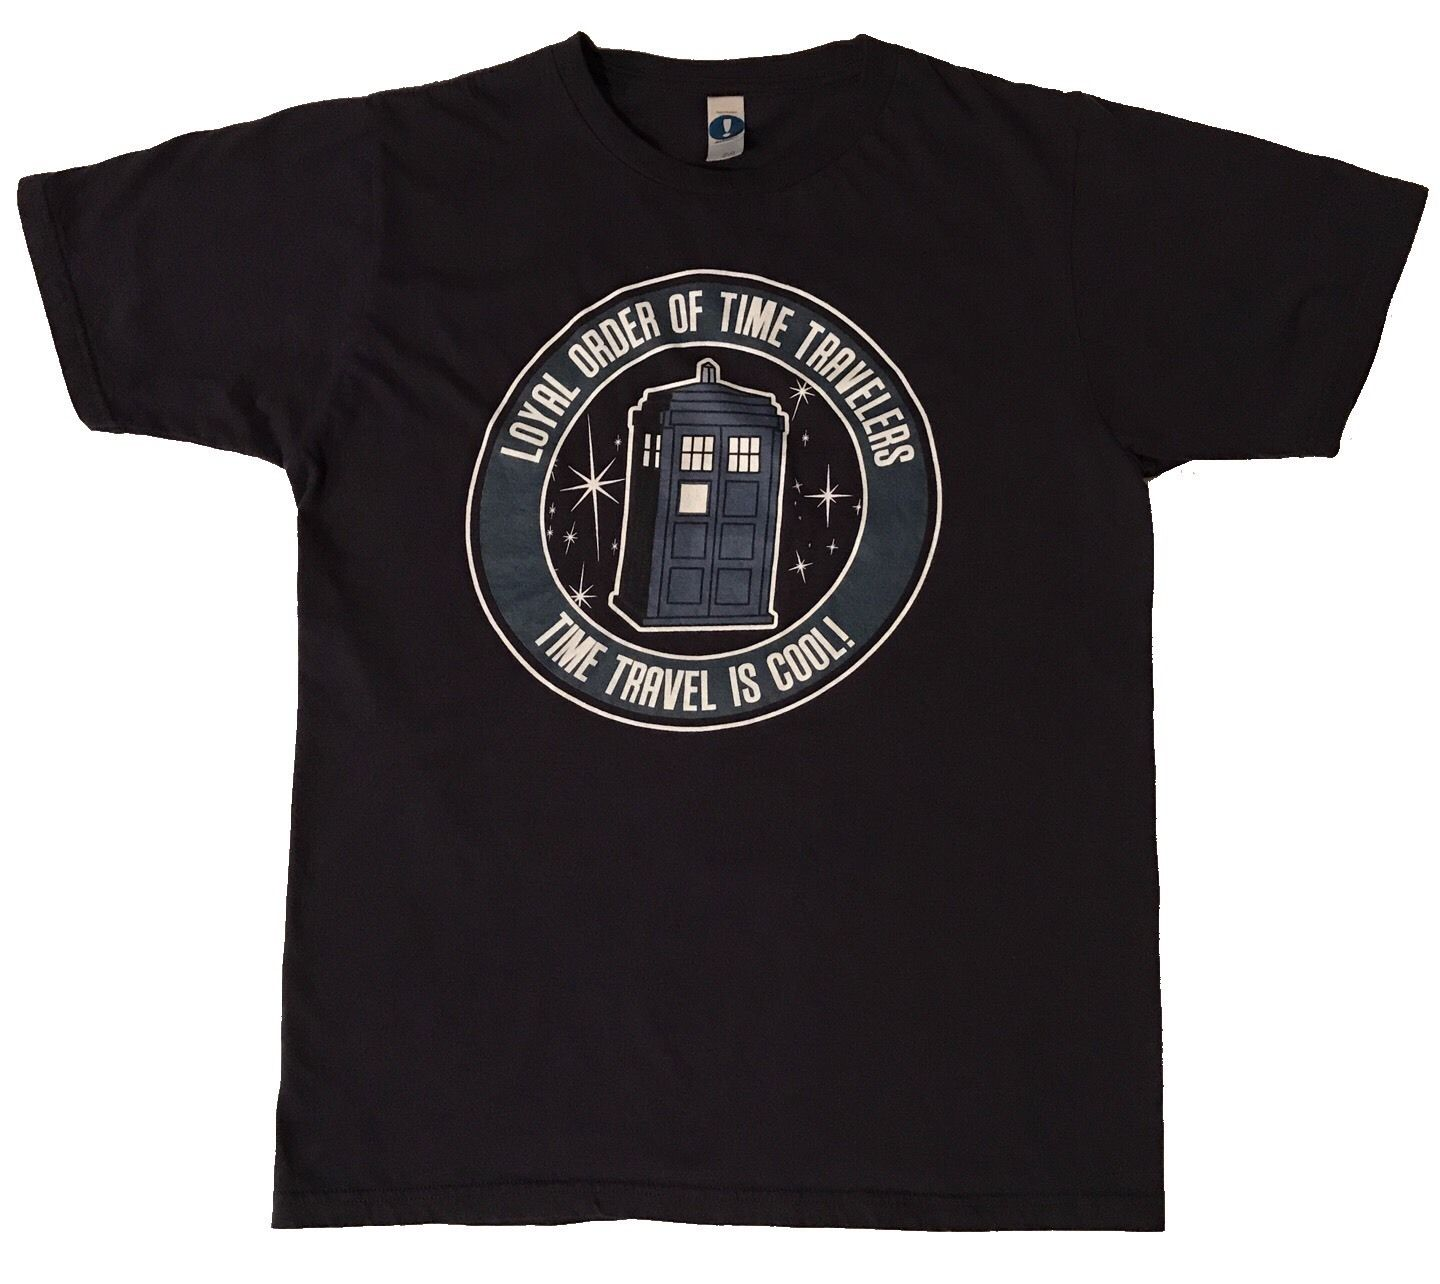 Animal shirt.woot! DOCTOR WHO LOYAL ORDER OF TIME TRAVELERS IS COOL BLUE T-SHIRT MEDIUM